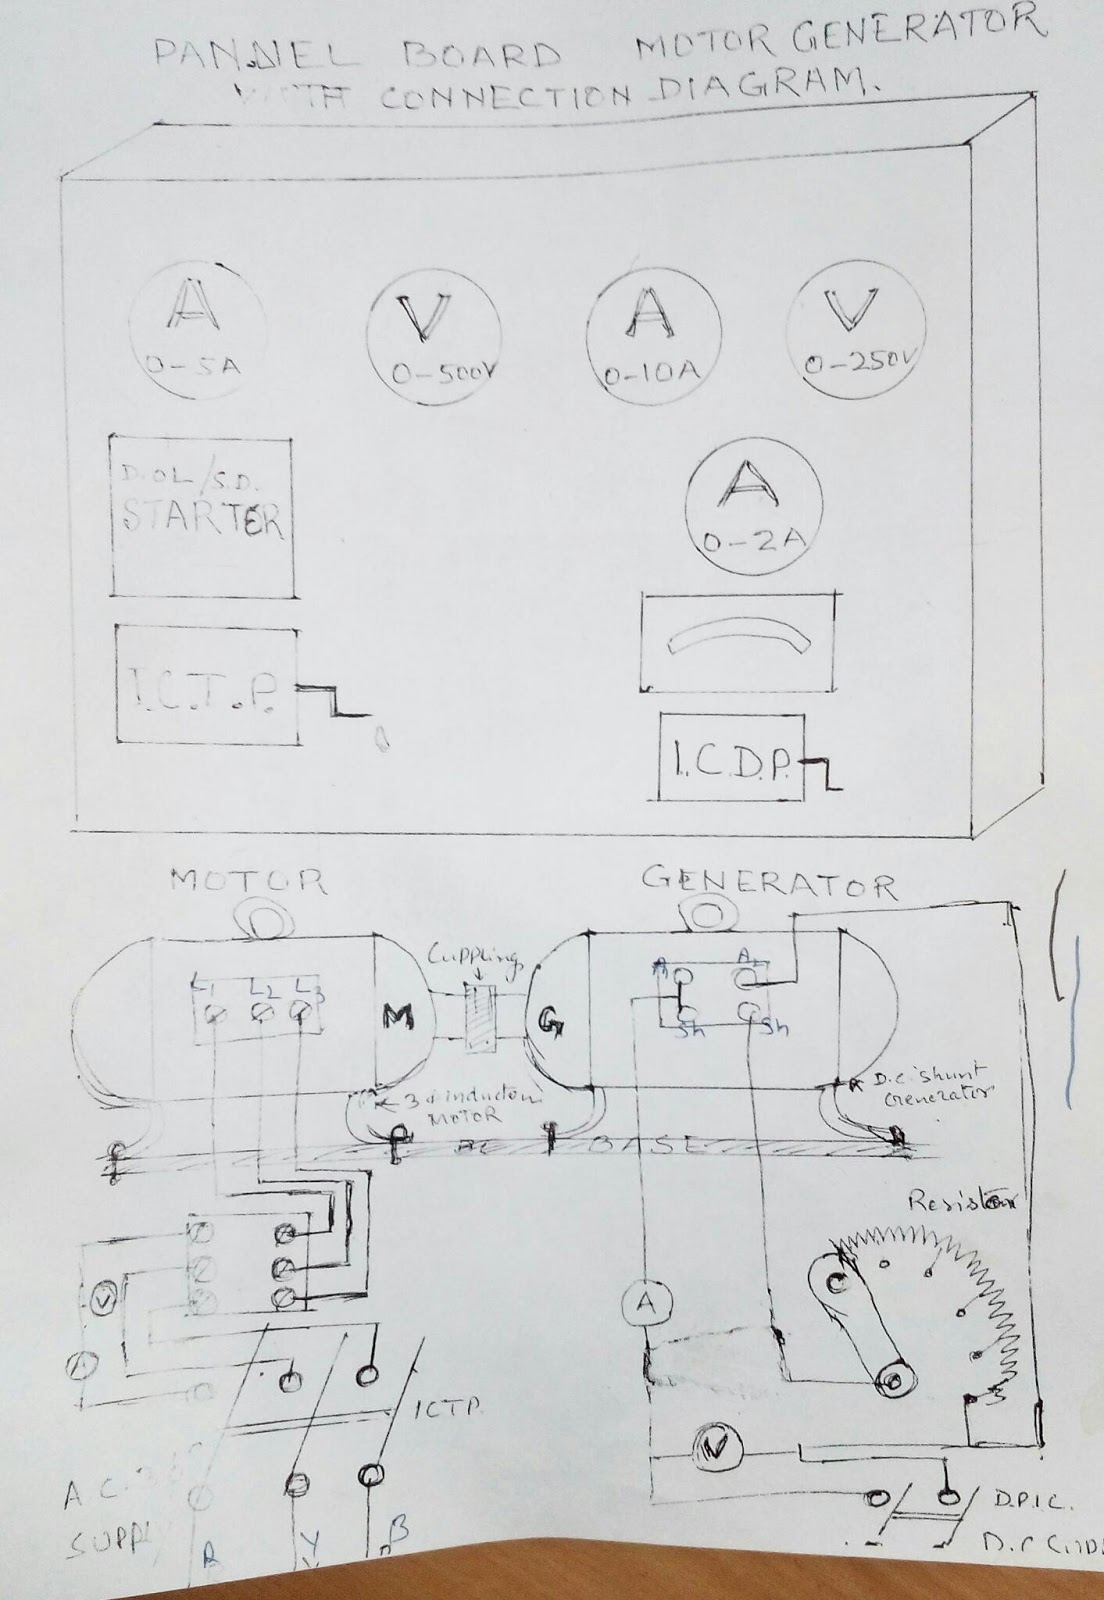 IMG_20160223_152851_045 motor generator circuit diagram mg set control panel cti generator control panel wiring diagram at soozxer.org